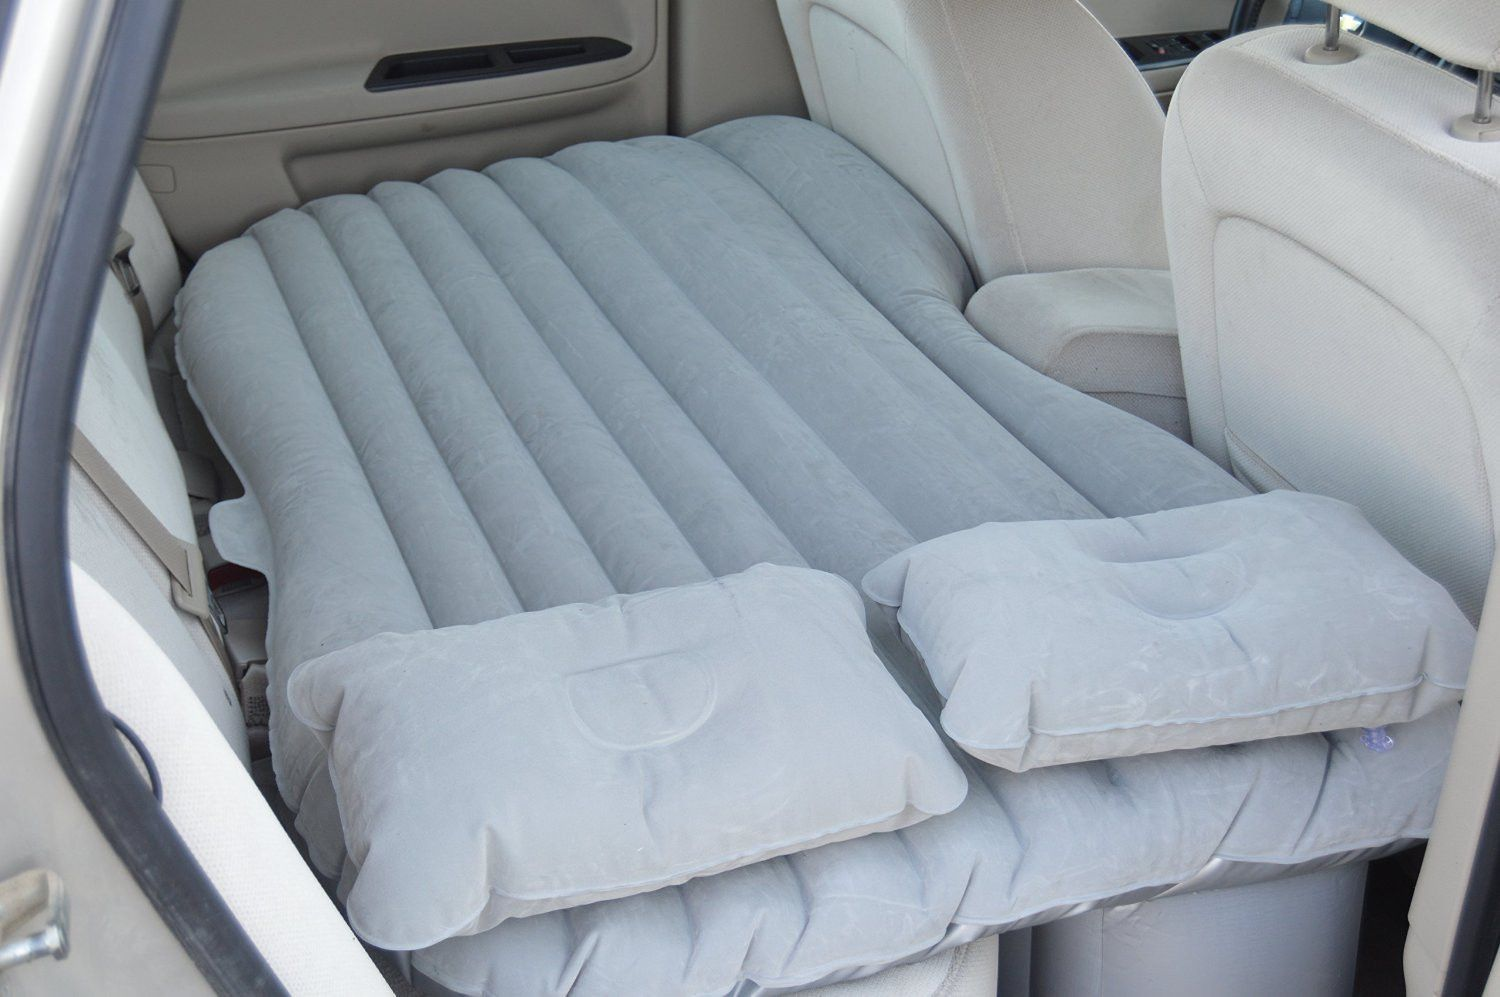 Car Air Mattress Inflatable And Portable Travel Mattress